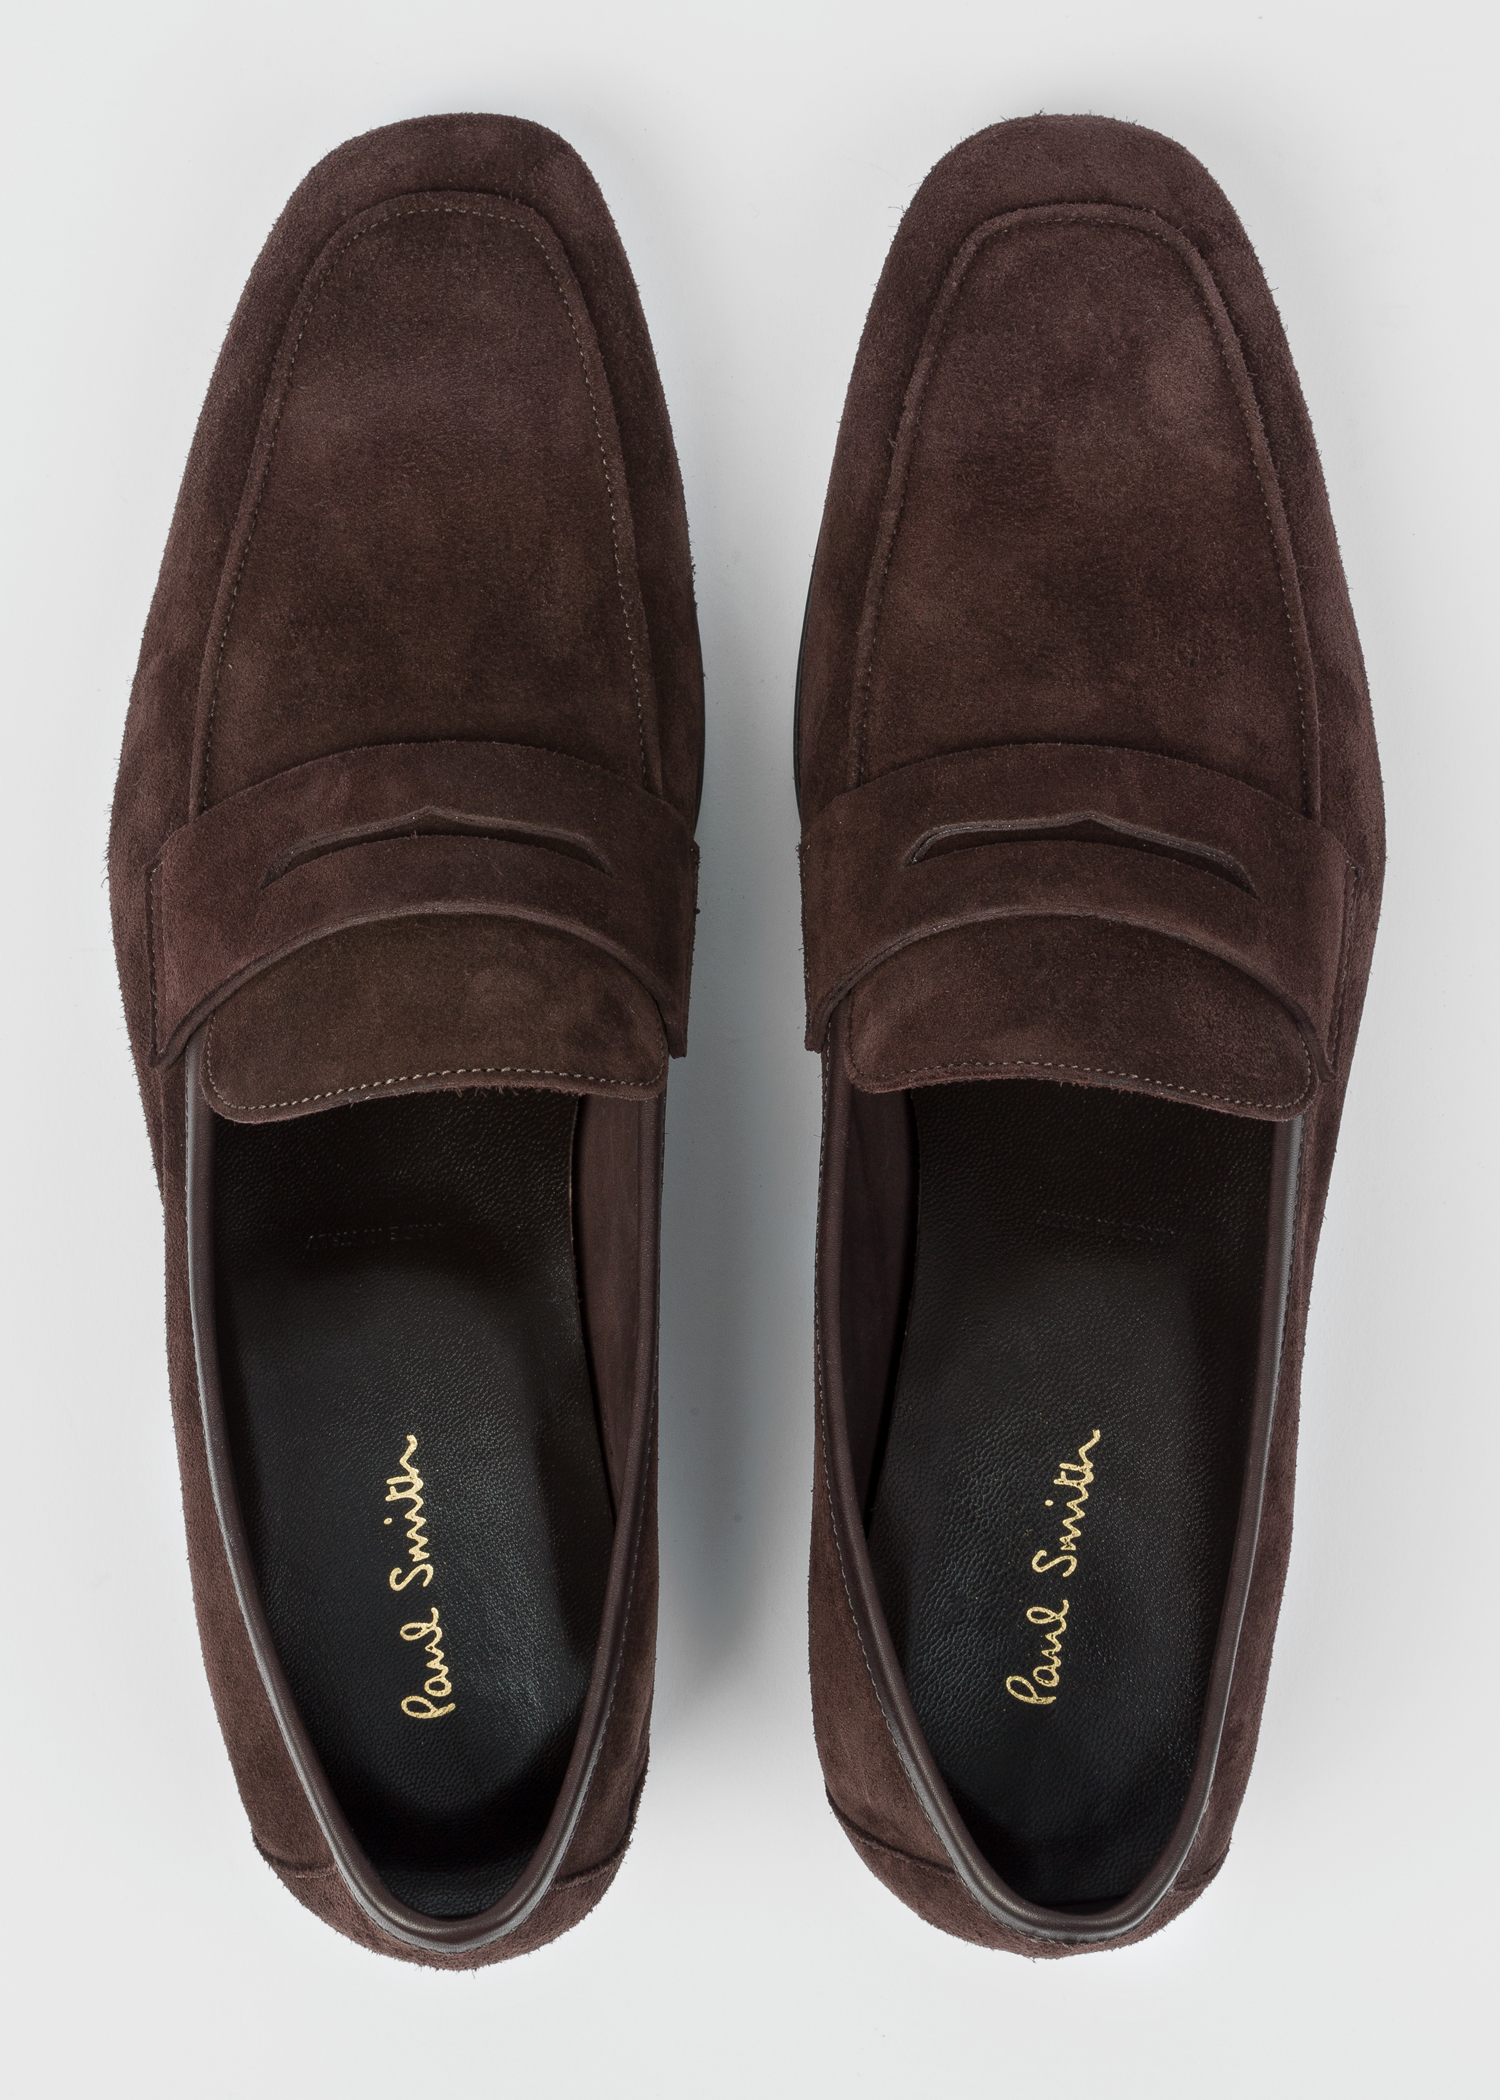 1675cc80f75 Top Down View - Men s Chocolate Suede Leather  Glynn  Penny Loafers ...